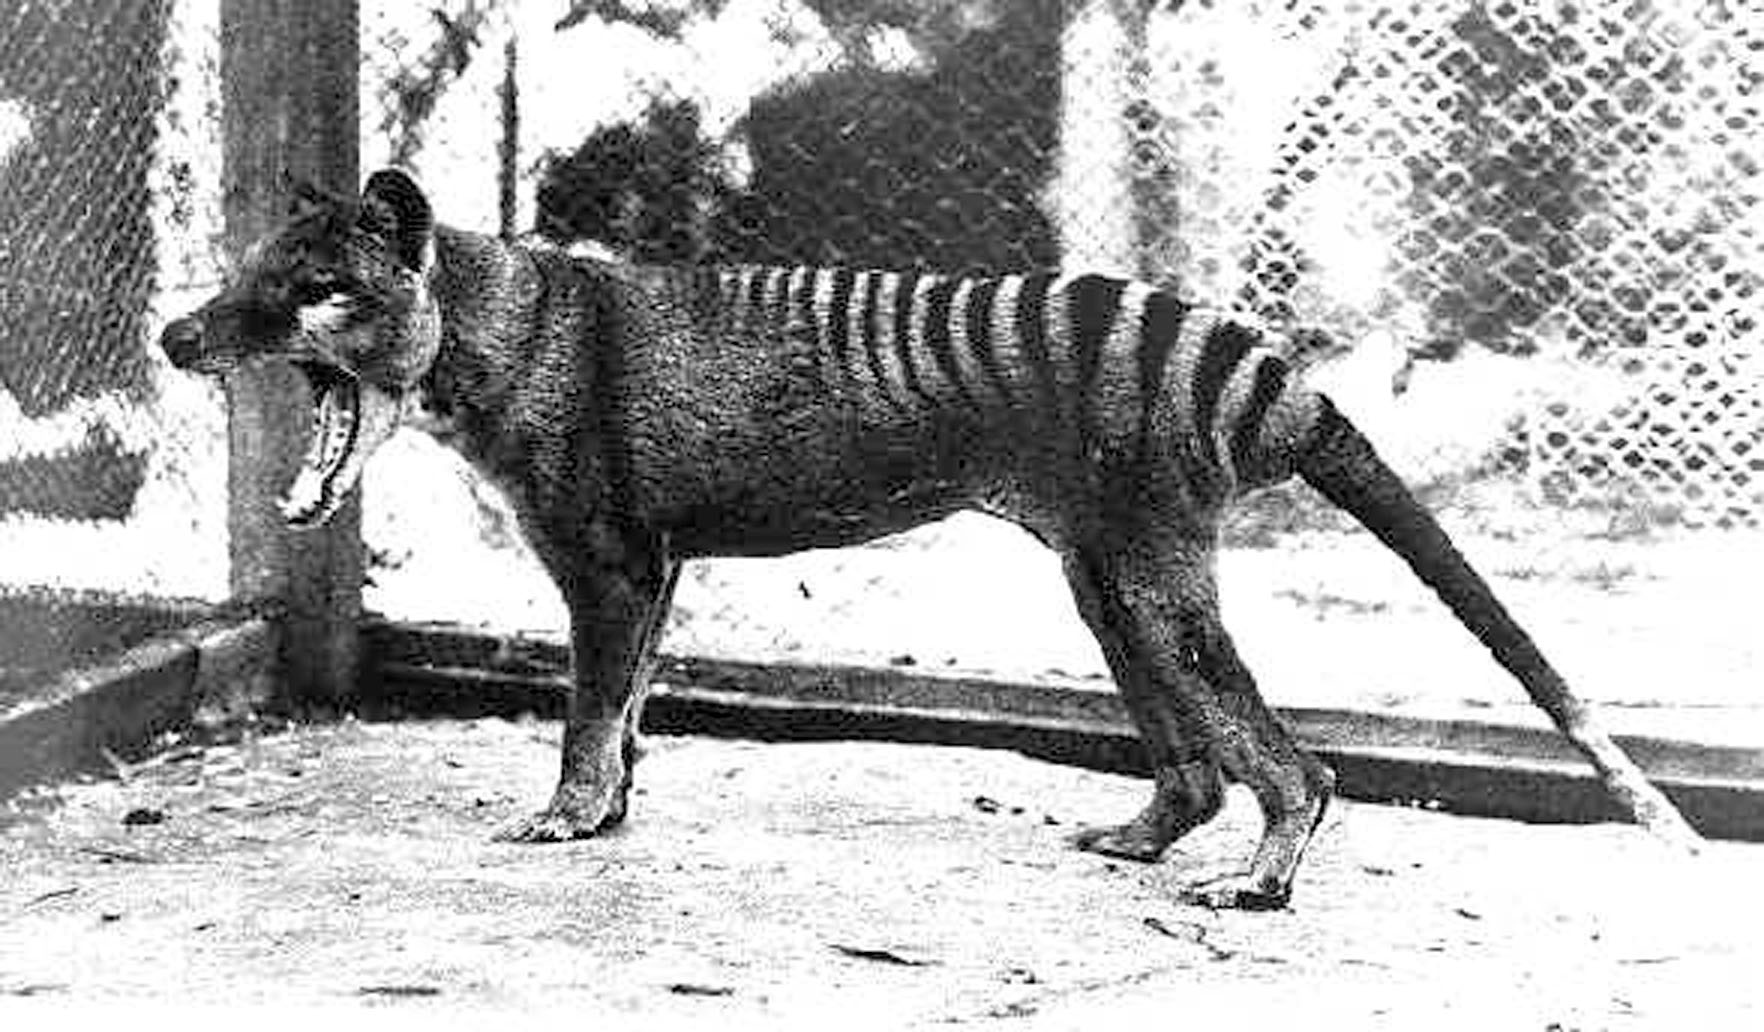 what caused the extinction of the tasmanian tiger